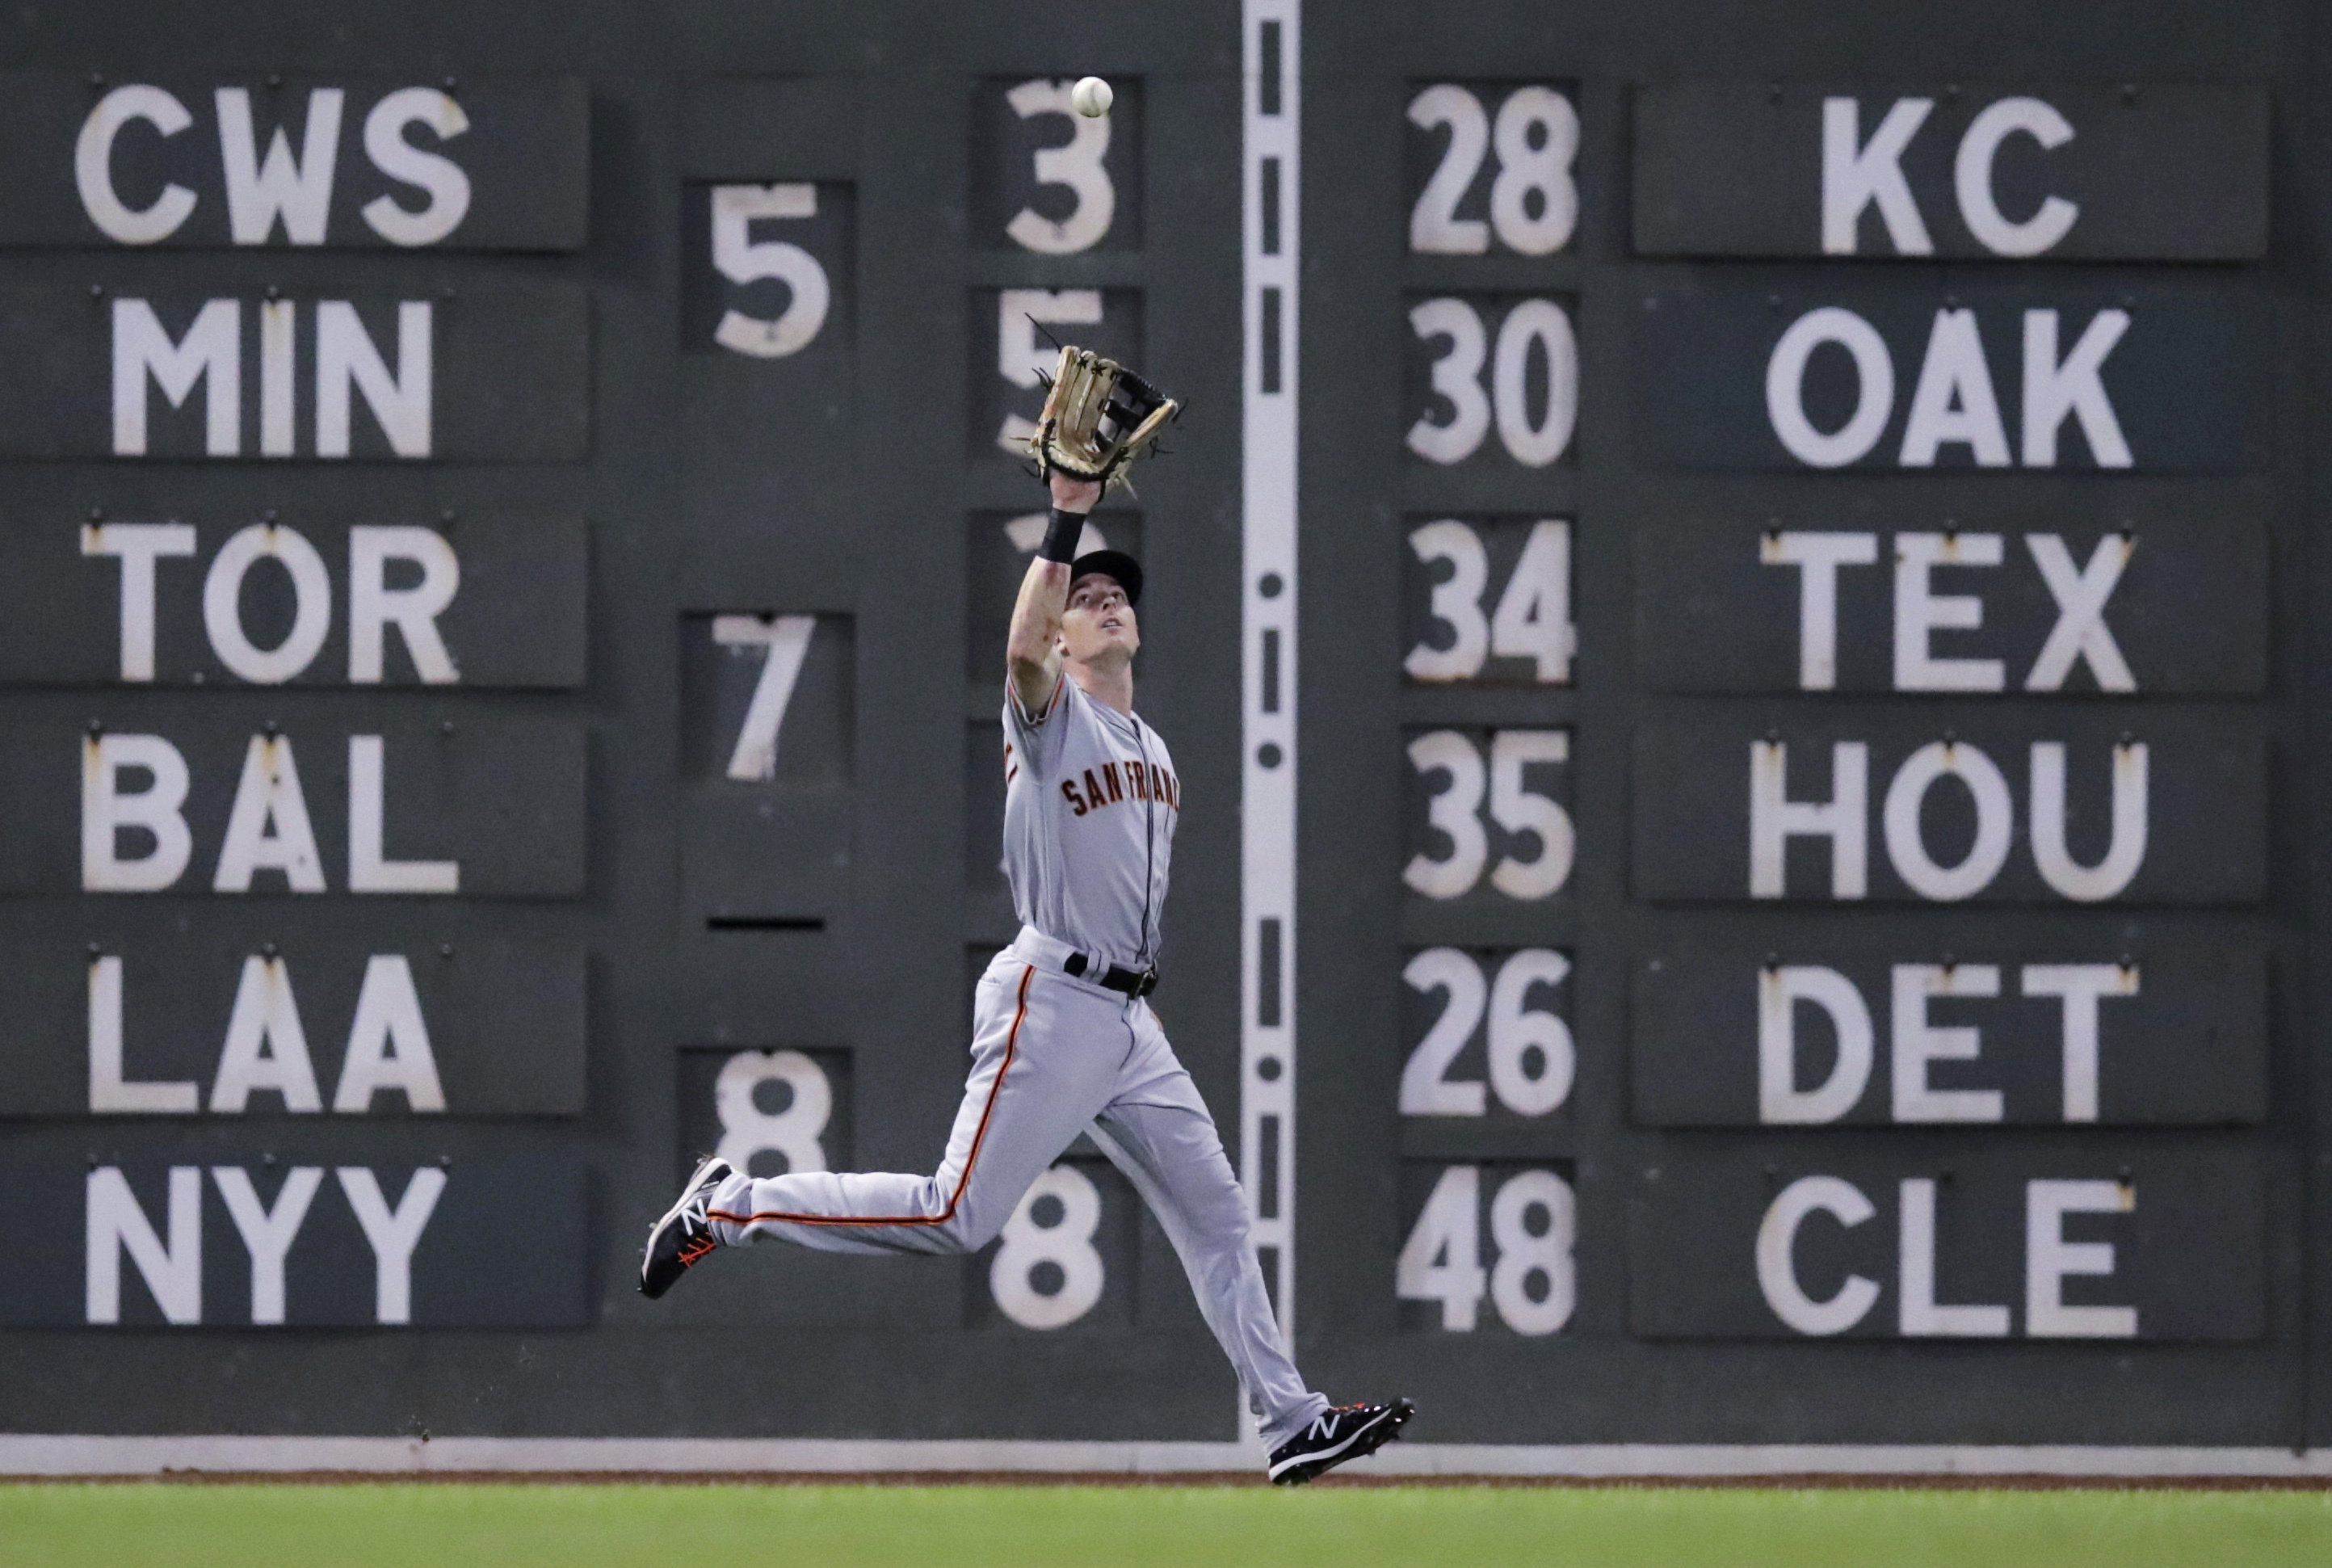 Boston Red Sox, Giants use MLB record-tying 24 pitchers in 15-inning game that San Francisco wins in 5 hours, 54 minutes